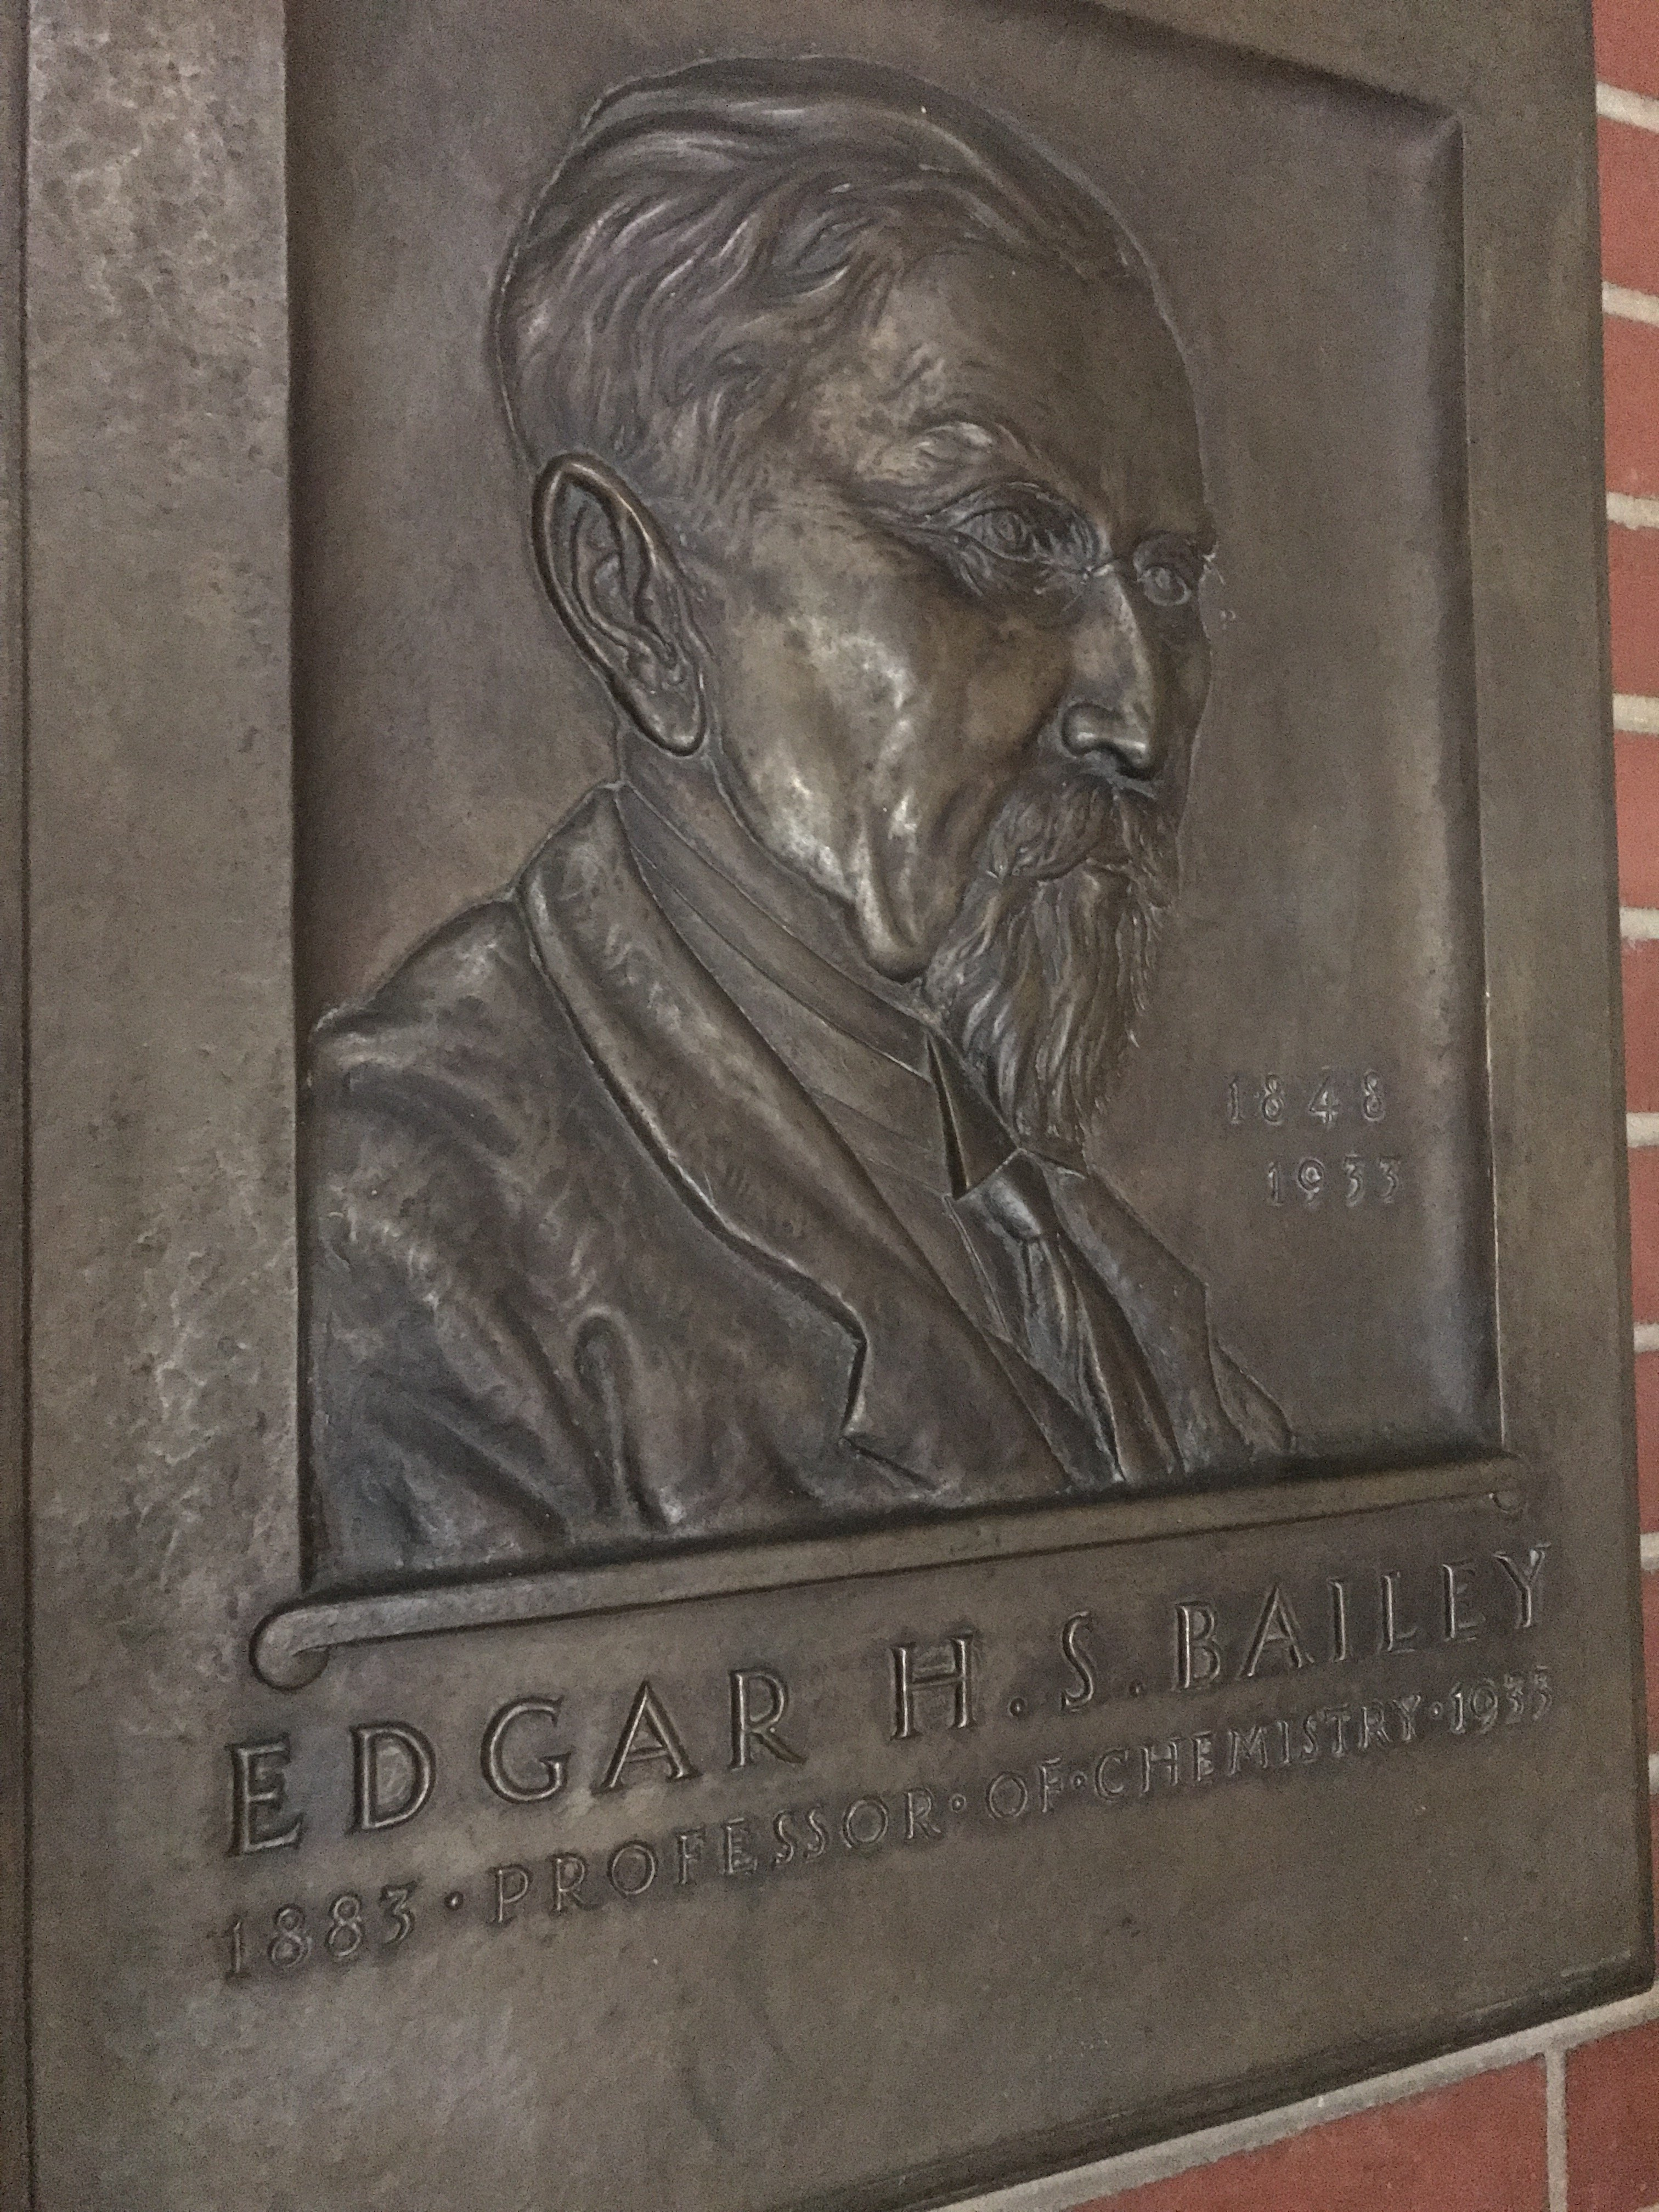 A plaque of Professor E. H. S. Bailey, celebrating the building's namesake.